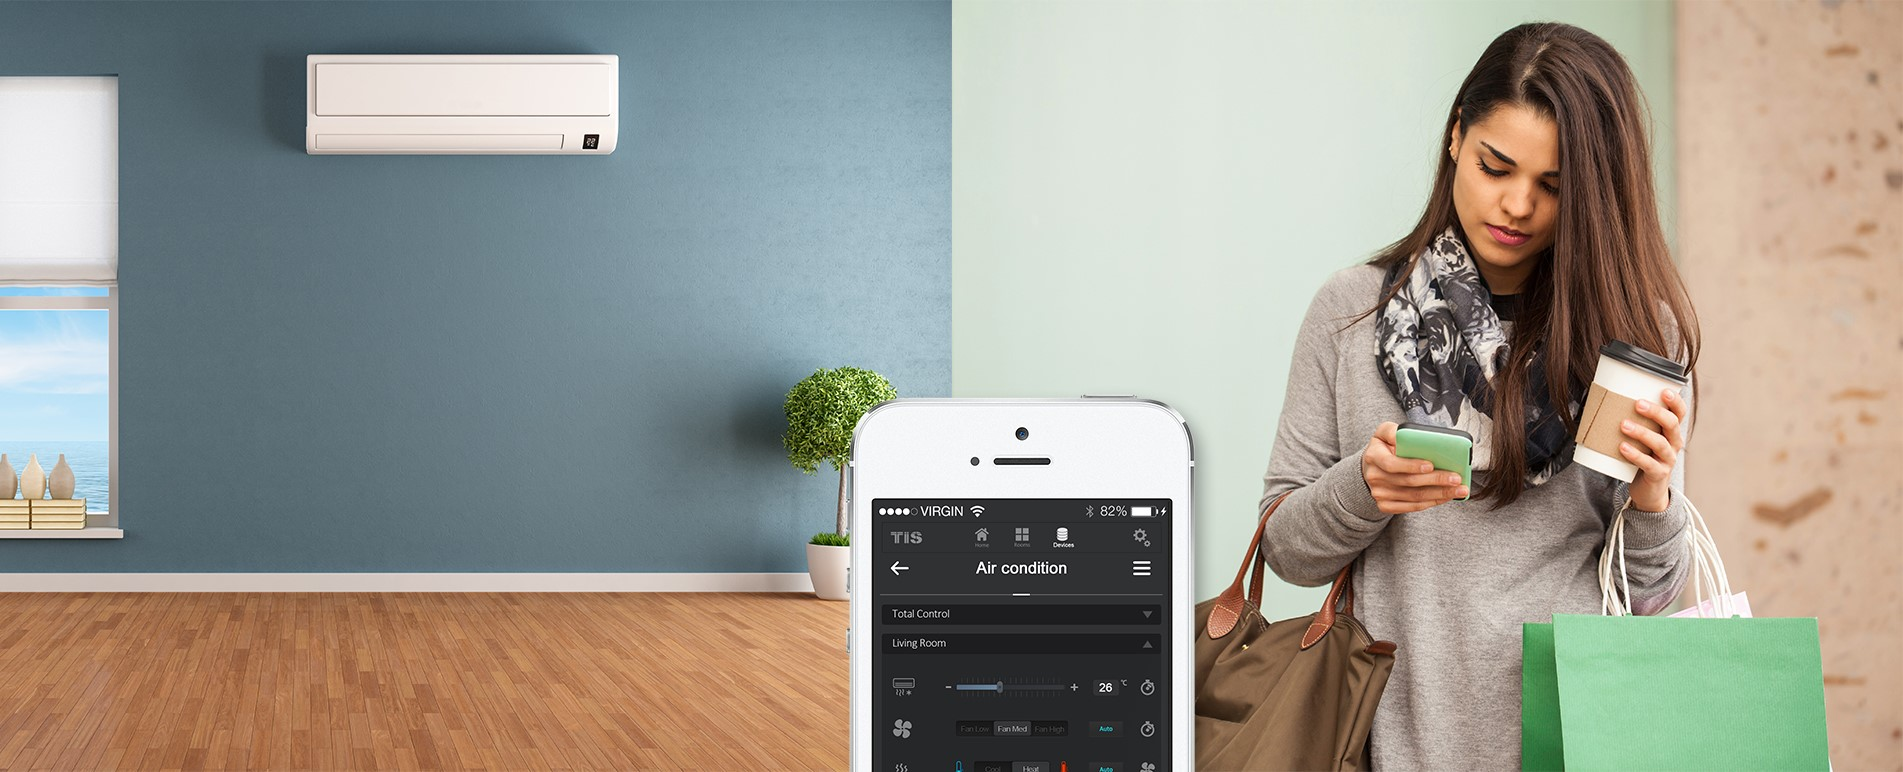 Control your AC anywhere remotely anytime – TIS